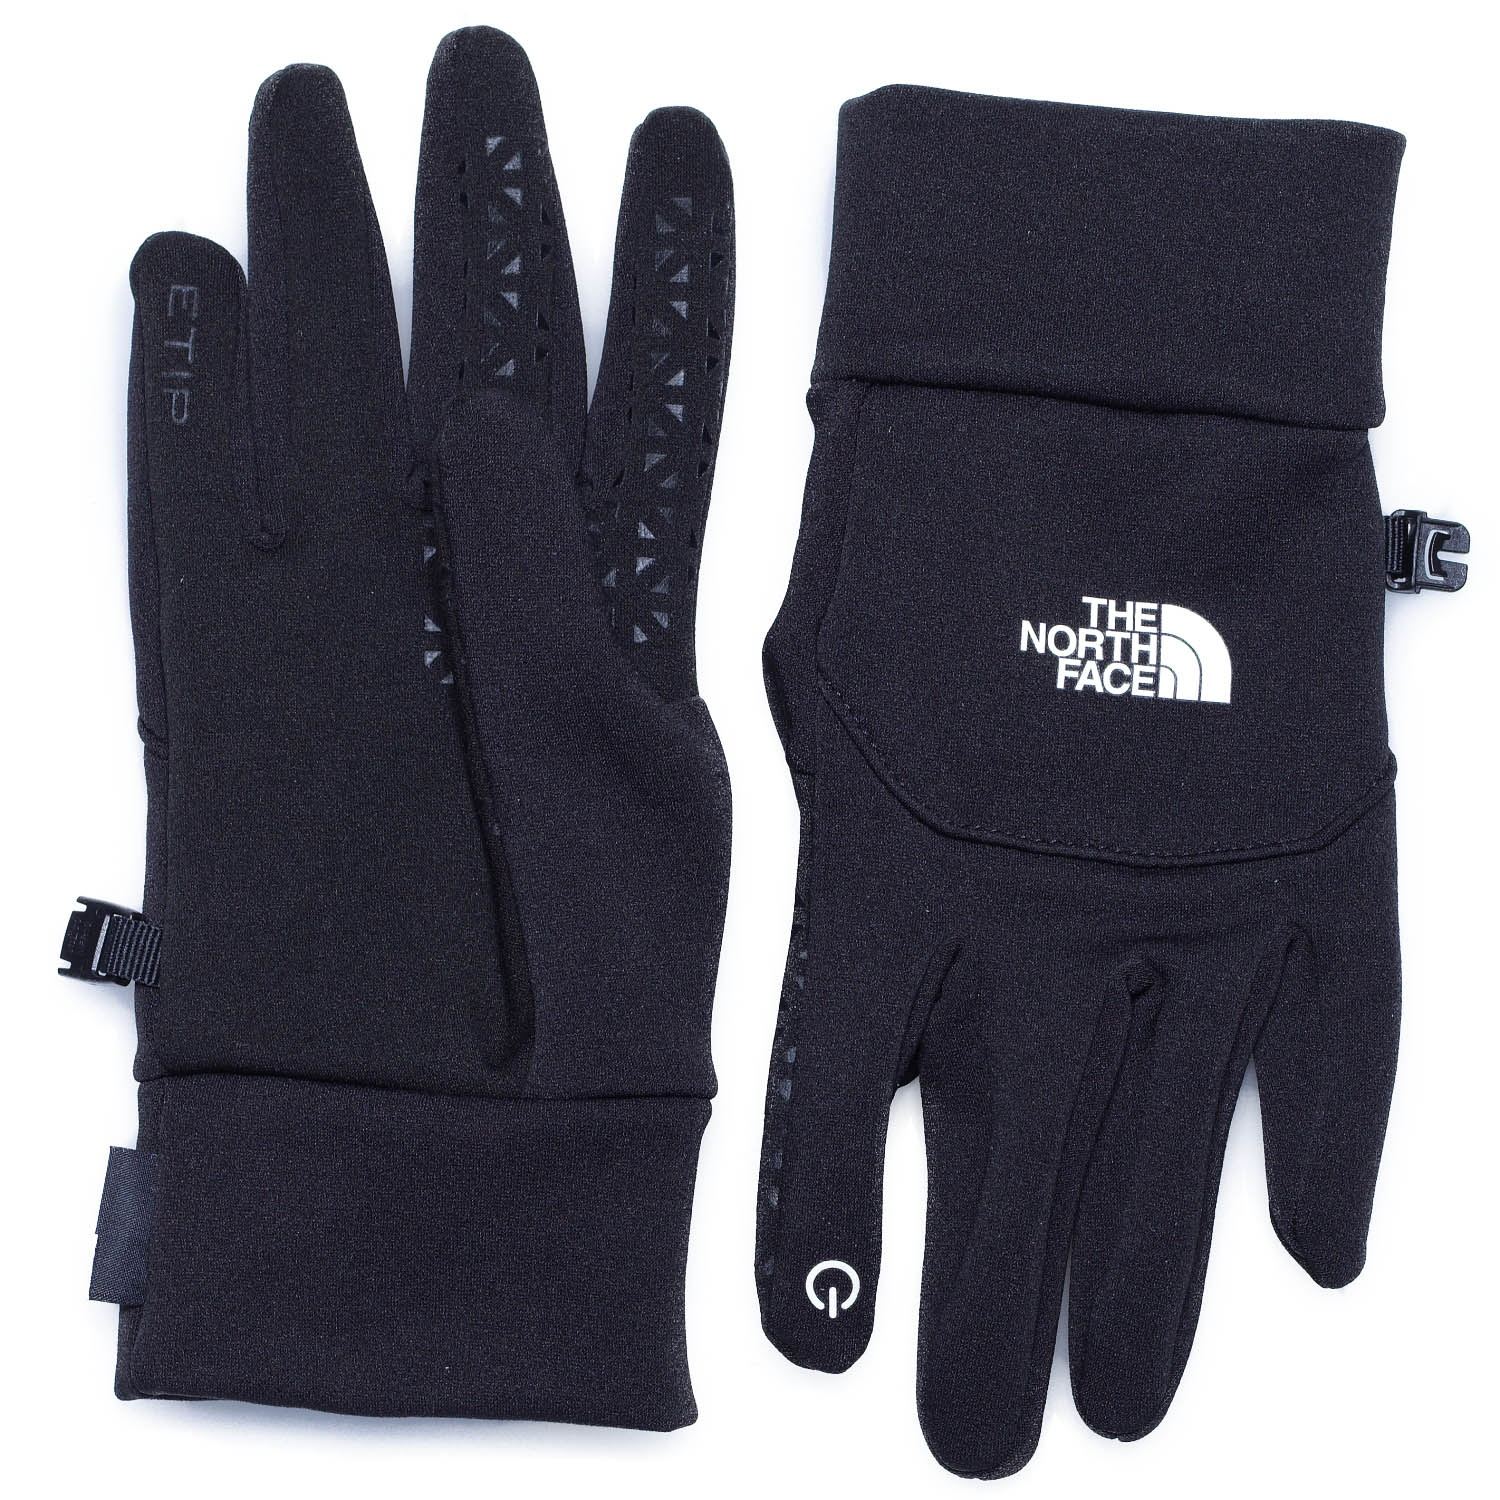 http://www.leadermode.com/67016/the-north-face-etip-glove-tnf-noir.jpg